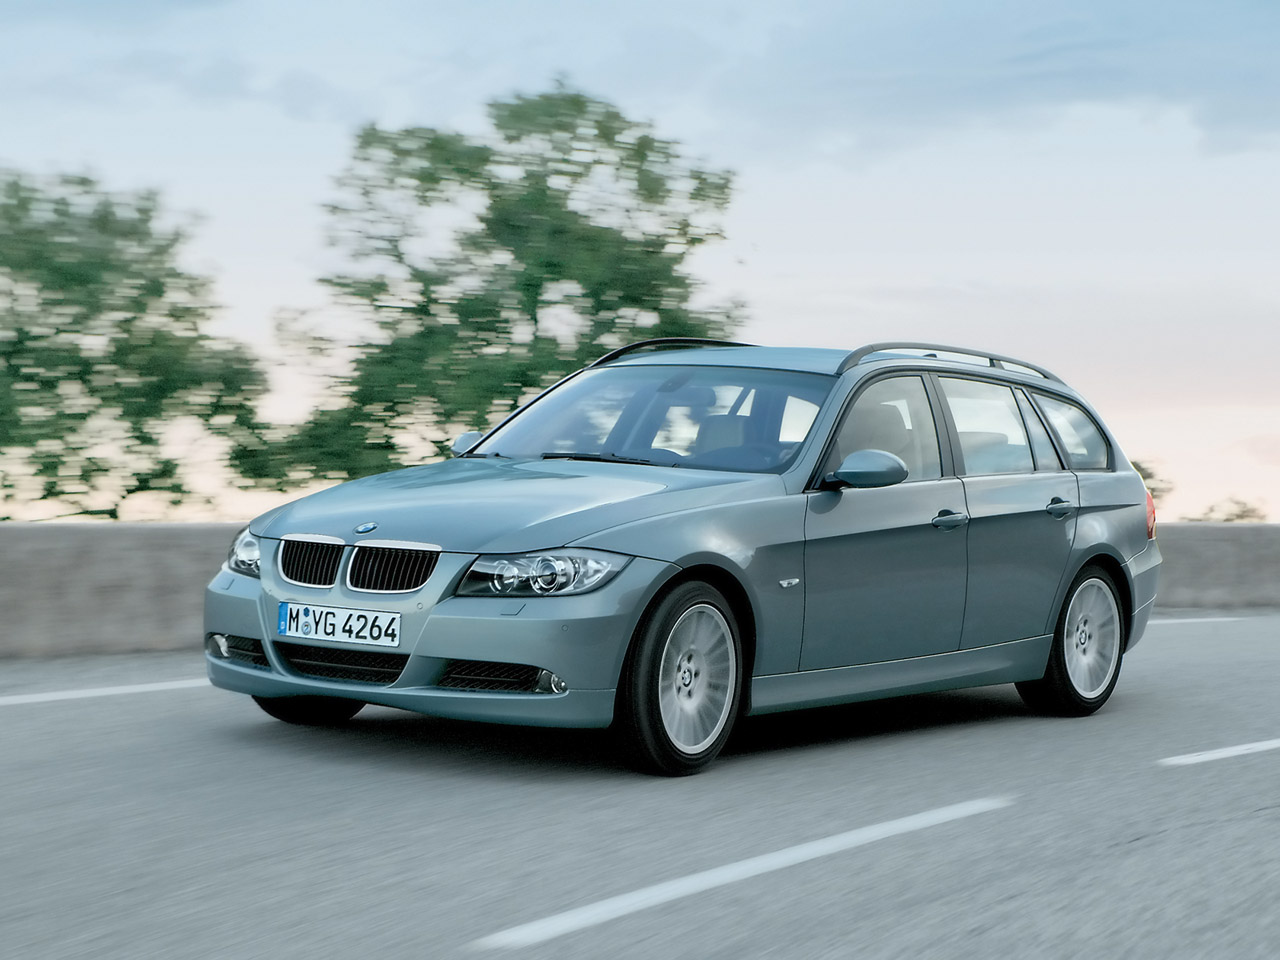 2006 bmw 3 series sports wagon review top speed. Black Bedroom Furniture Sets. Home Design Ideas